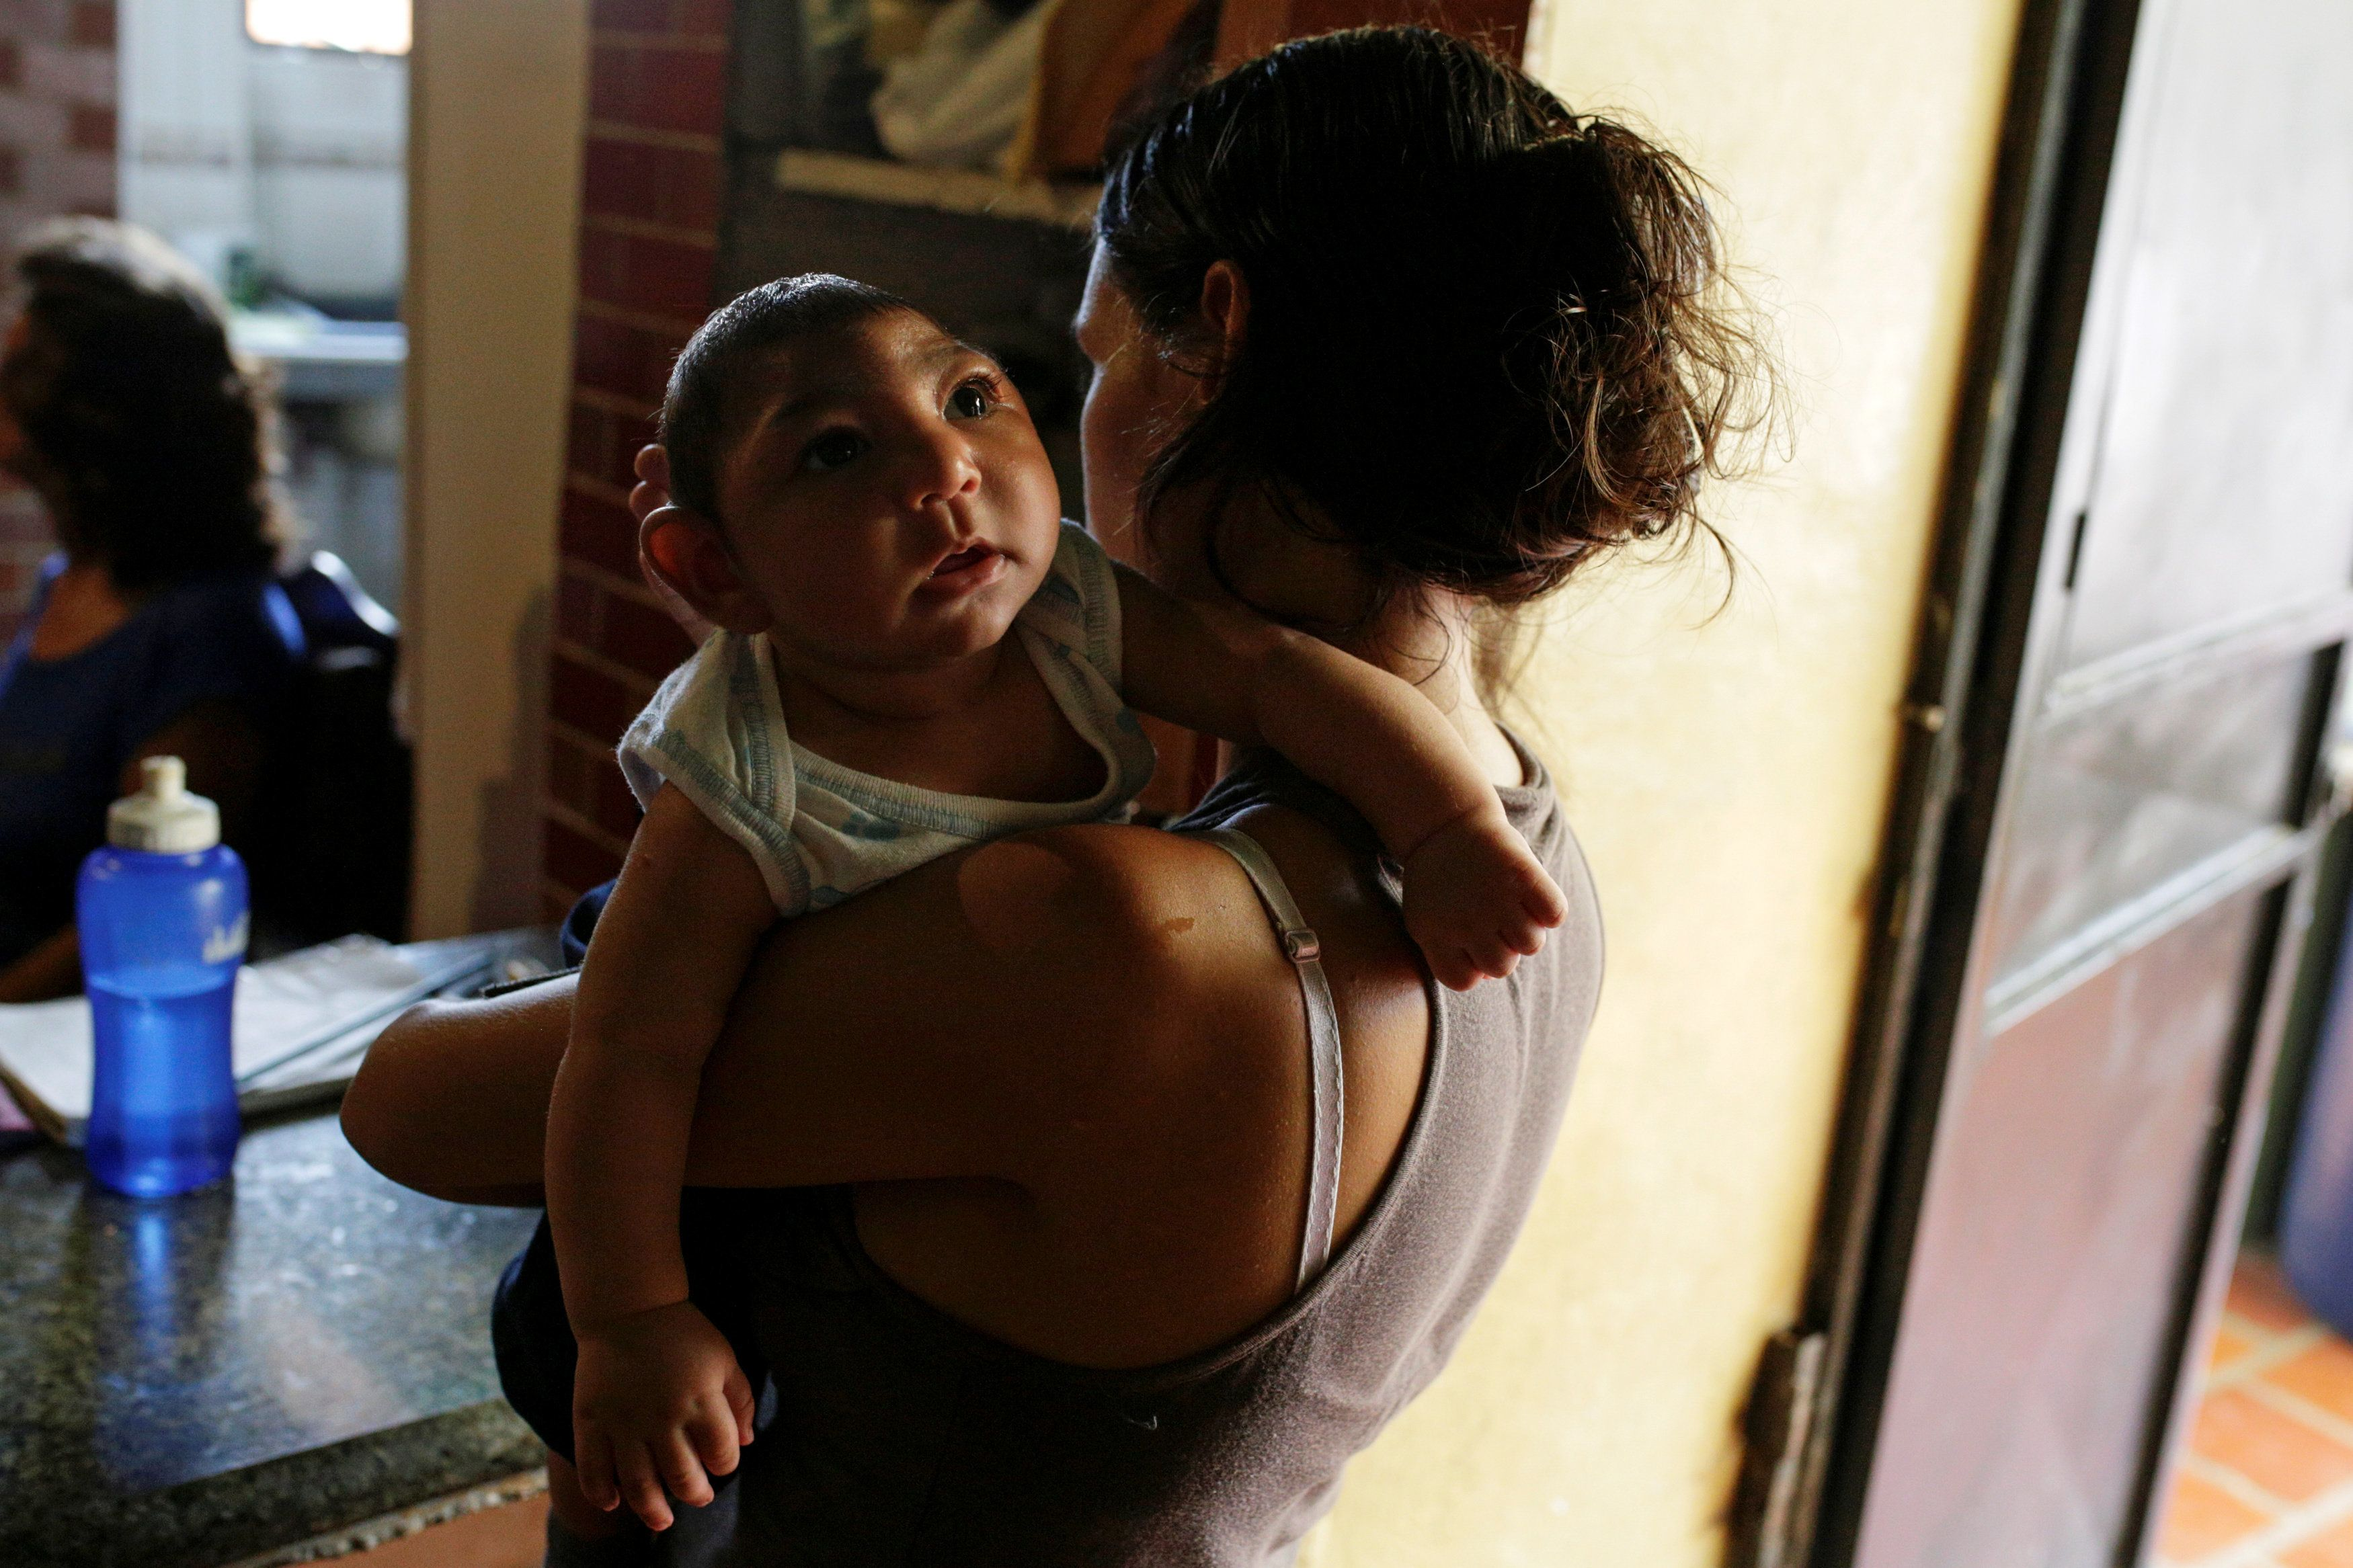 Ericka Torres holds her 3-months old son Jesus, who was born with microcephaly, at their home in Guarenas, Venezuela October 5, 2016. Picture taken October 5, 2016. REUTERS/Marco Bello